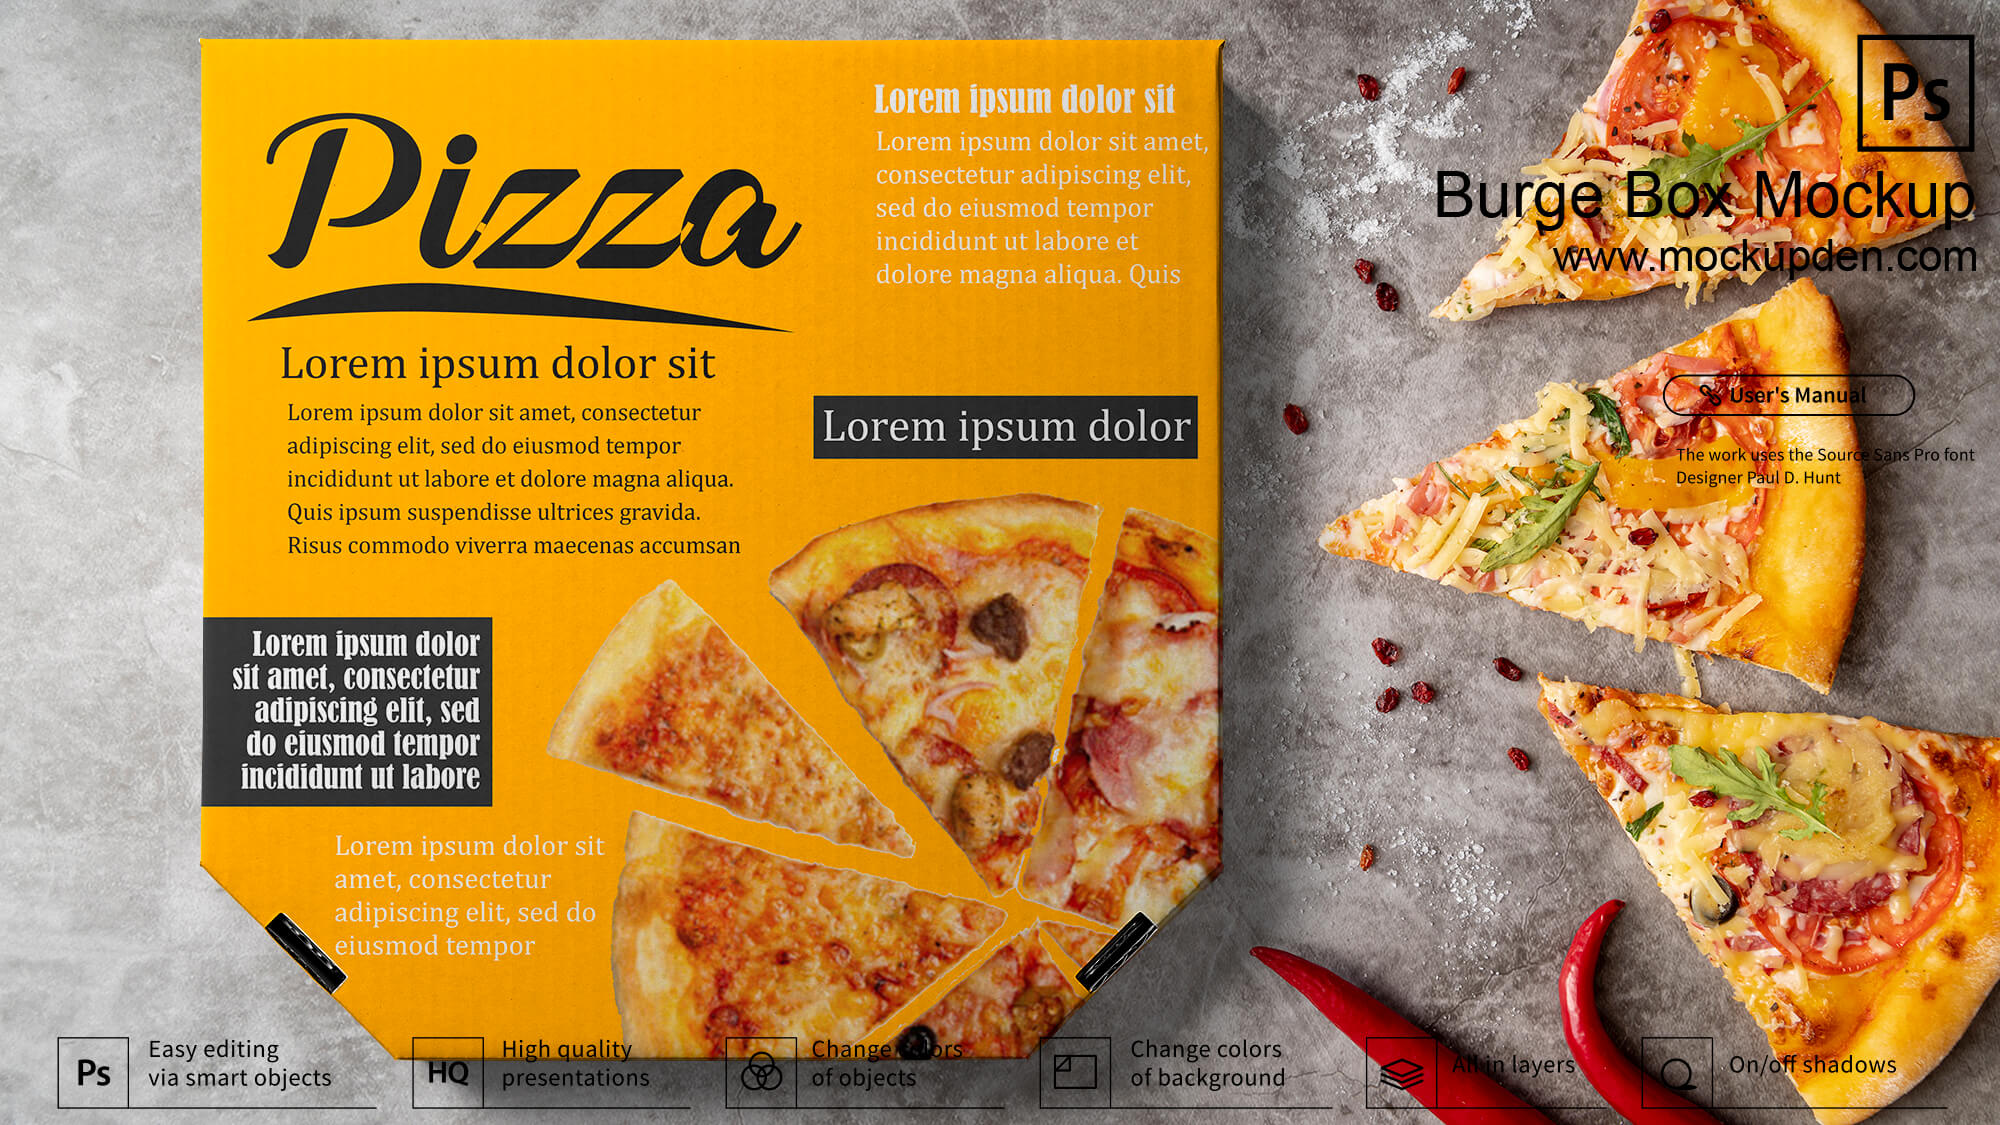 Free Pizza Box Mockup PSD Template